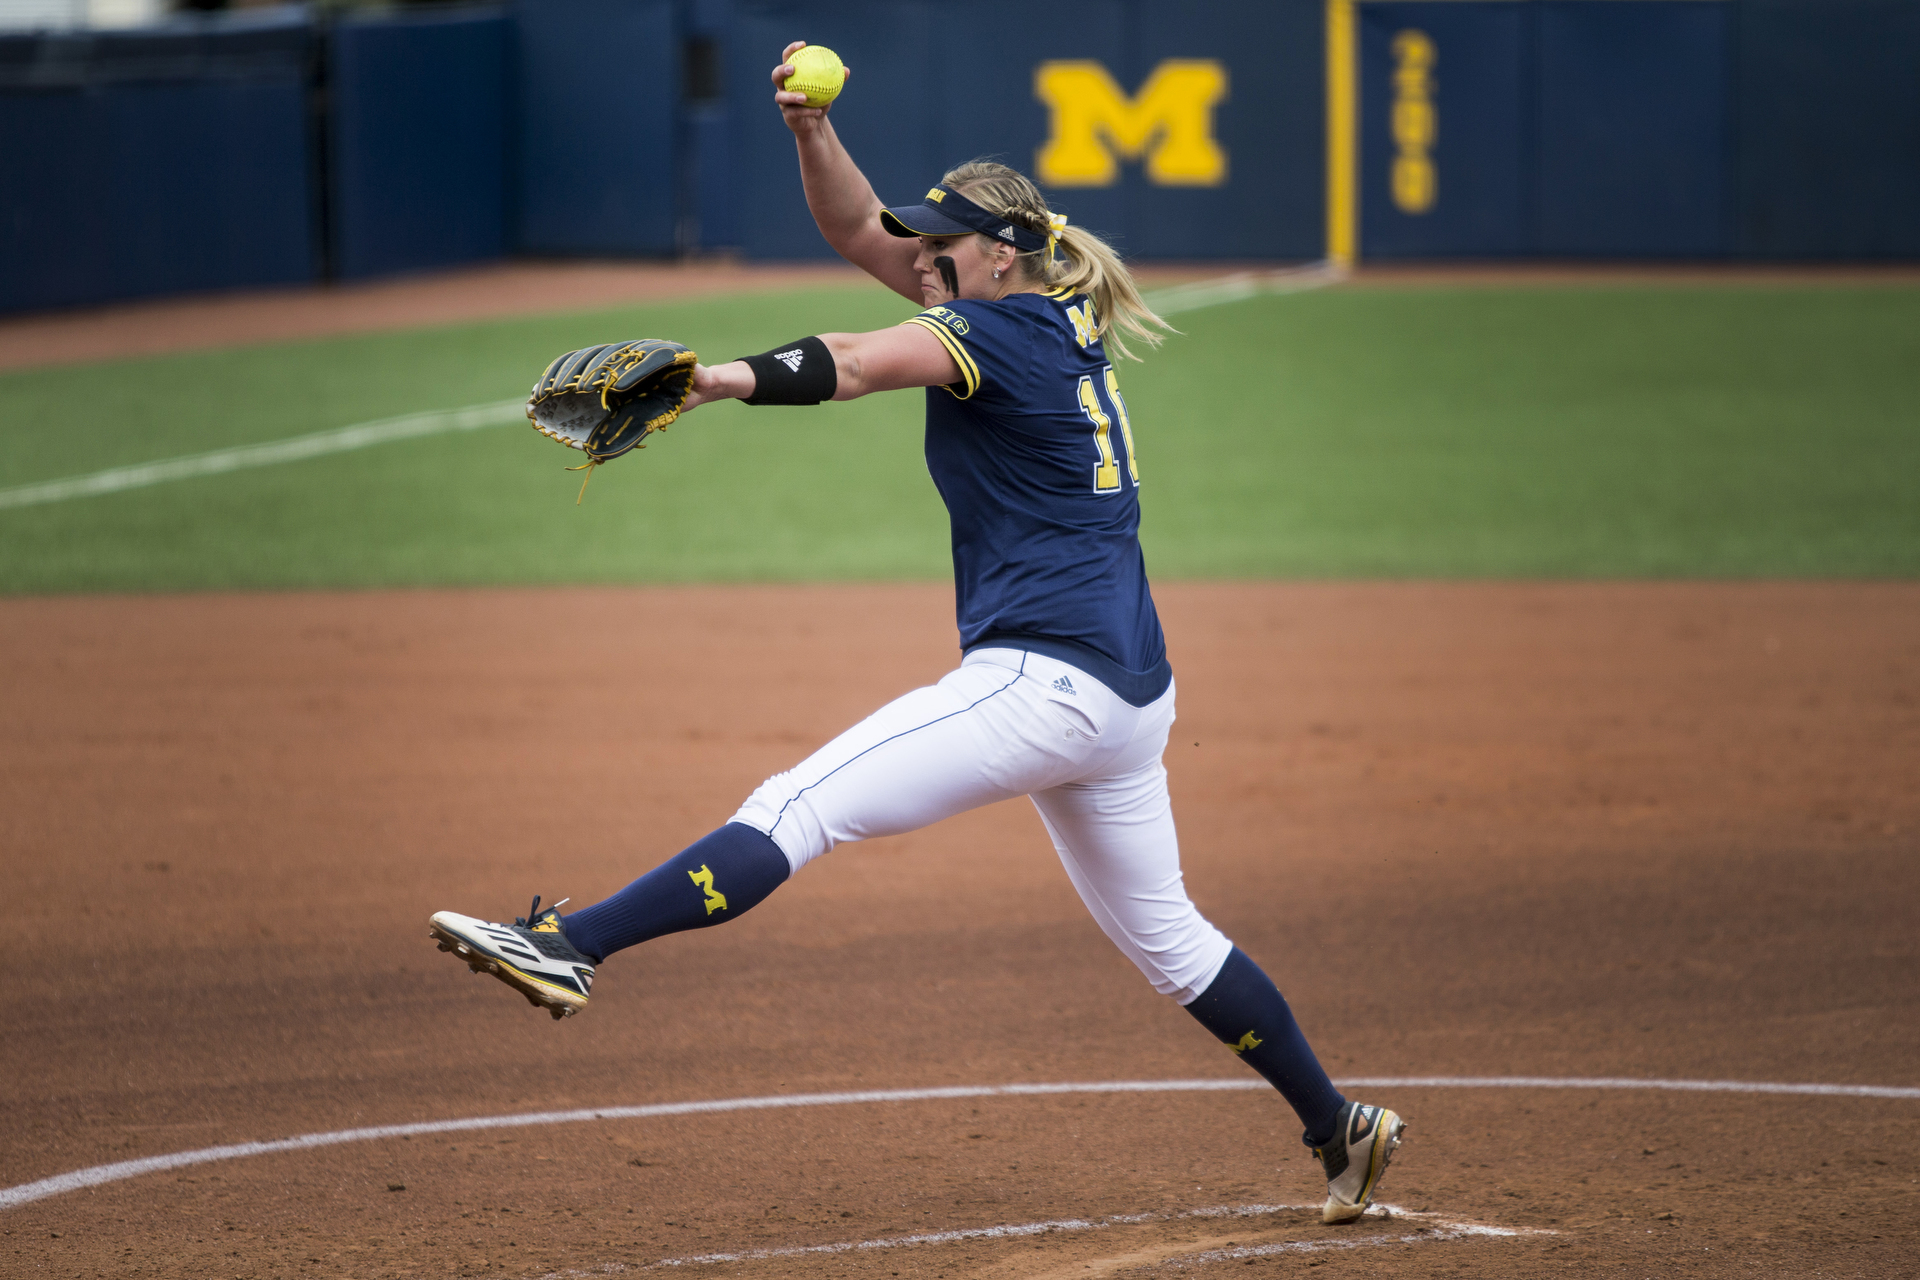 The Michigan Wolverines softball team plays Rutgers on May 7, 2016 in Ann Arbor, MI. (Photo by Taylor Baucom/The Players' Tribune)